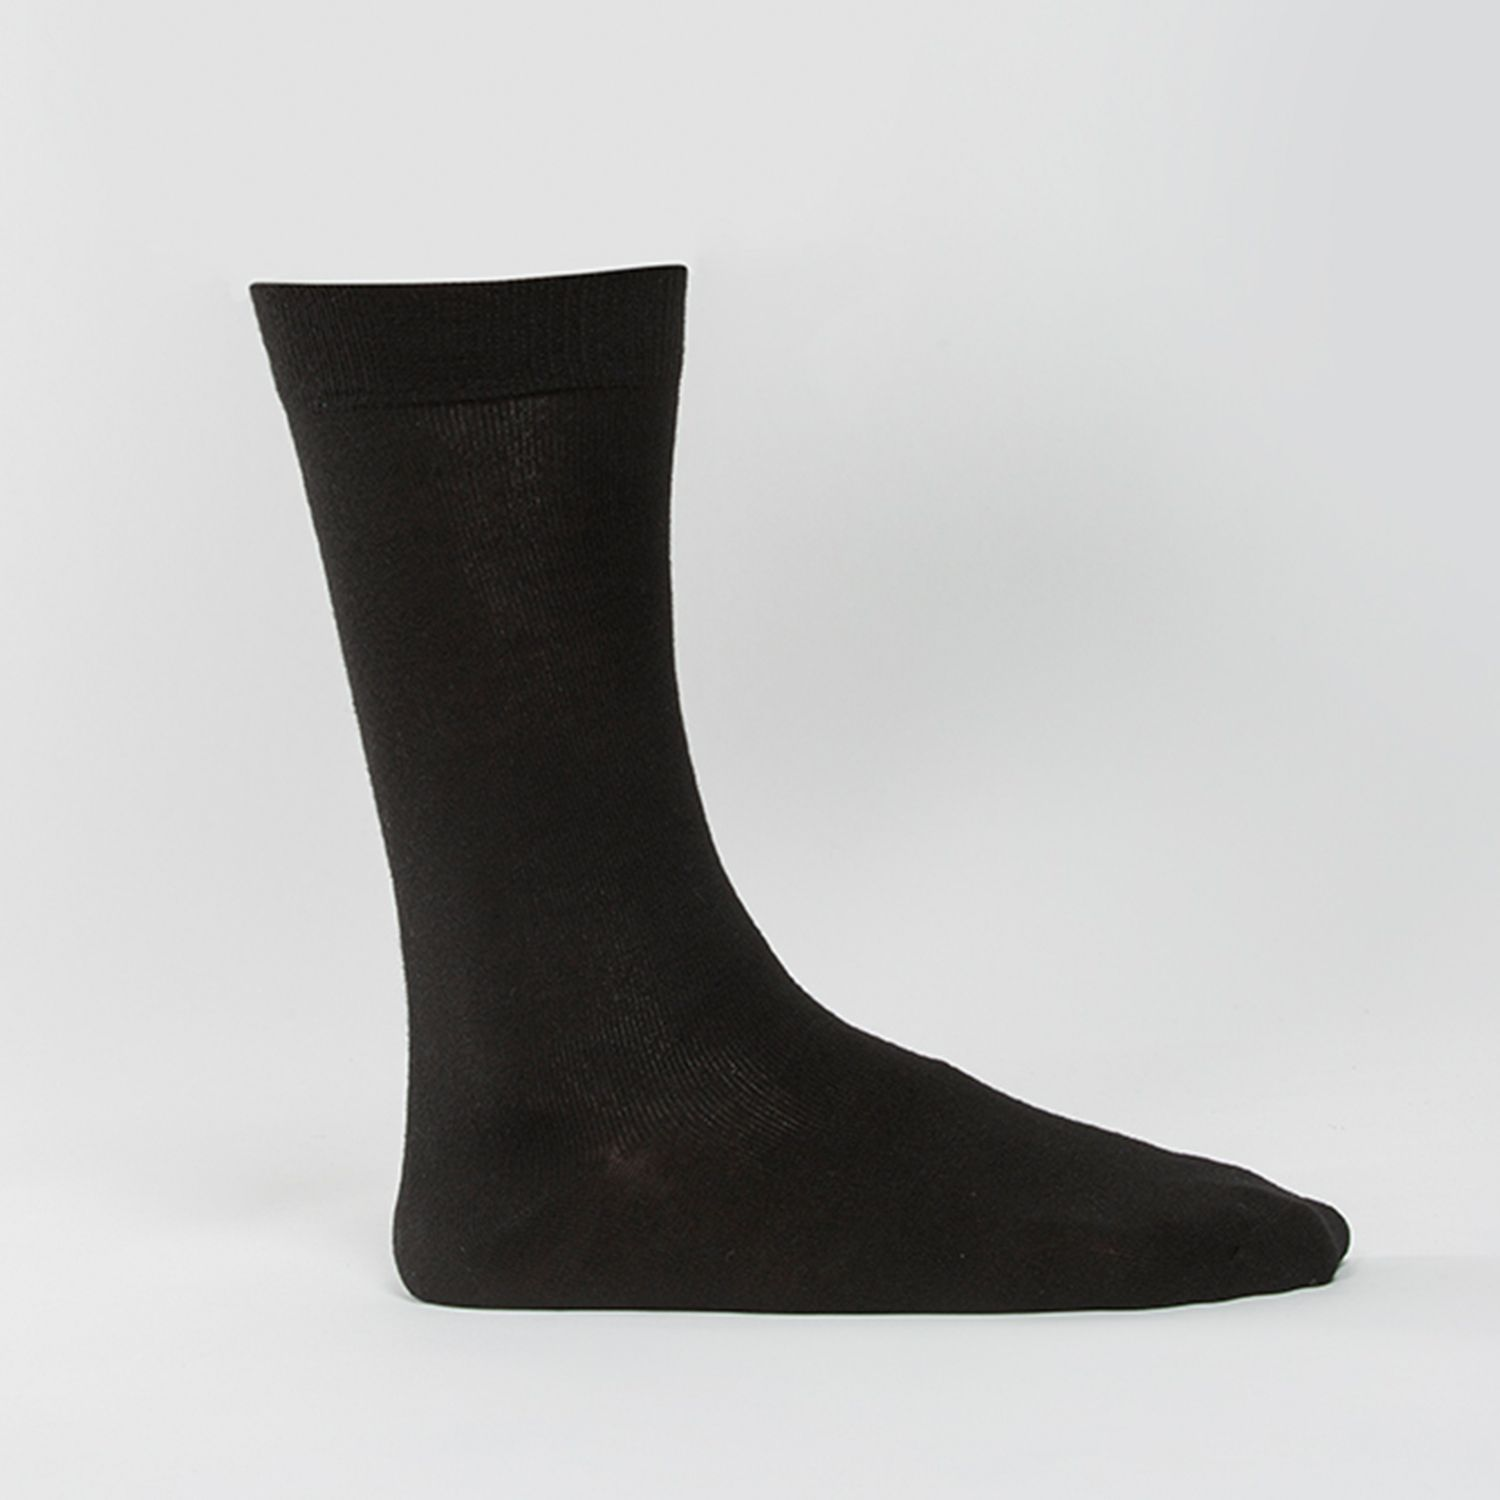 Kayser Soquetes Bamboo NEGRO Calcetines